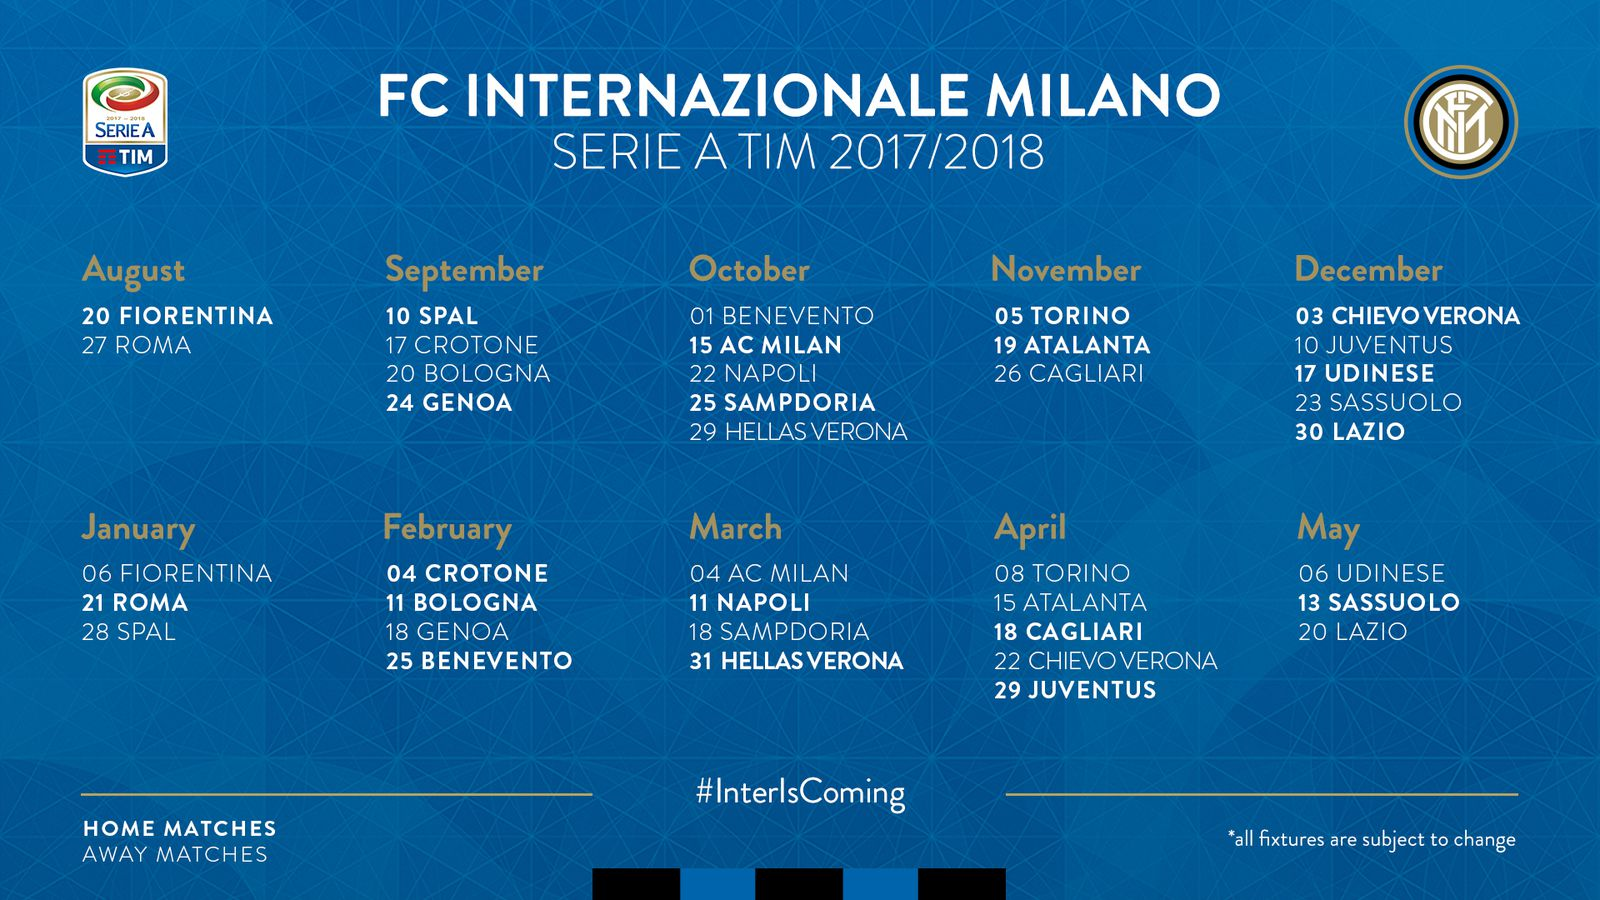 Calendario Serie A As Roma.Inter Milan Will Be Home To Fiorentina To Start The 17 18